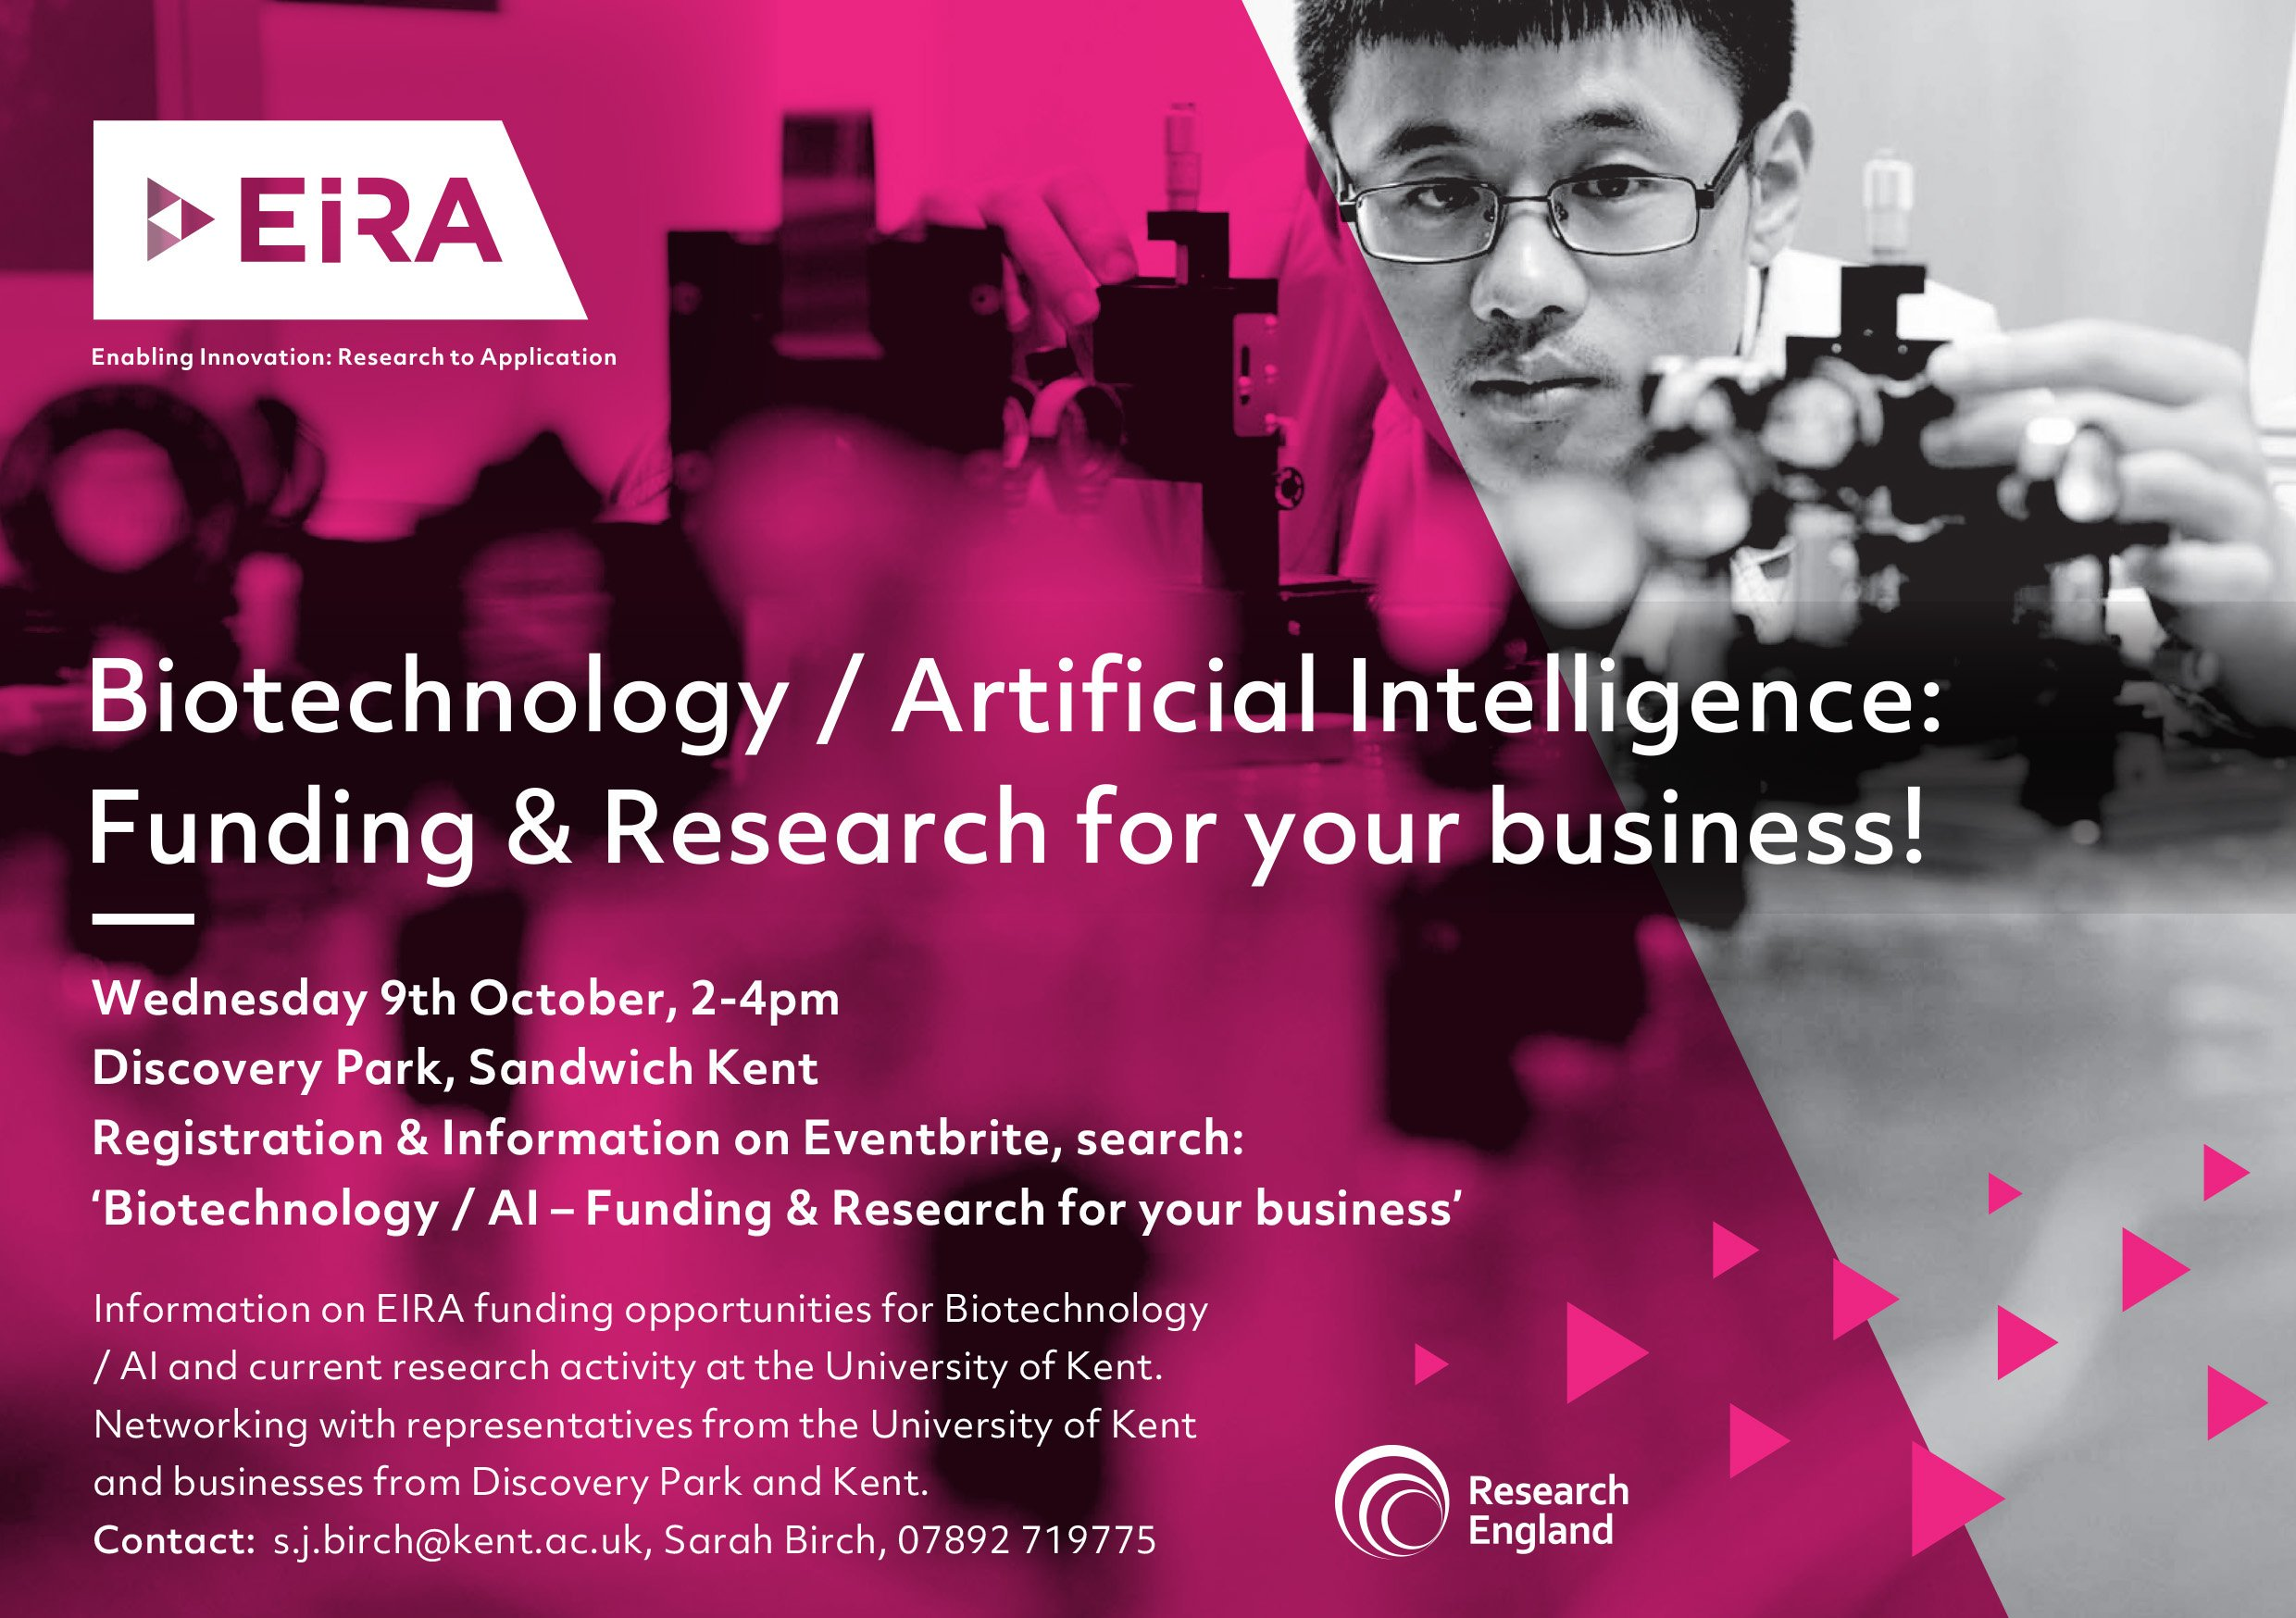 Biotech and AI - Funding and research for your business! - EIRA